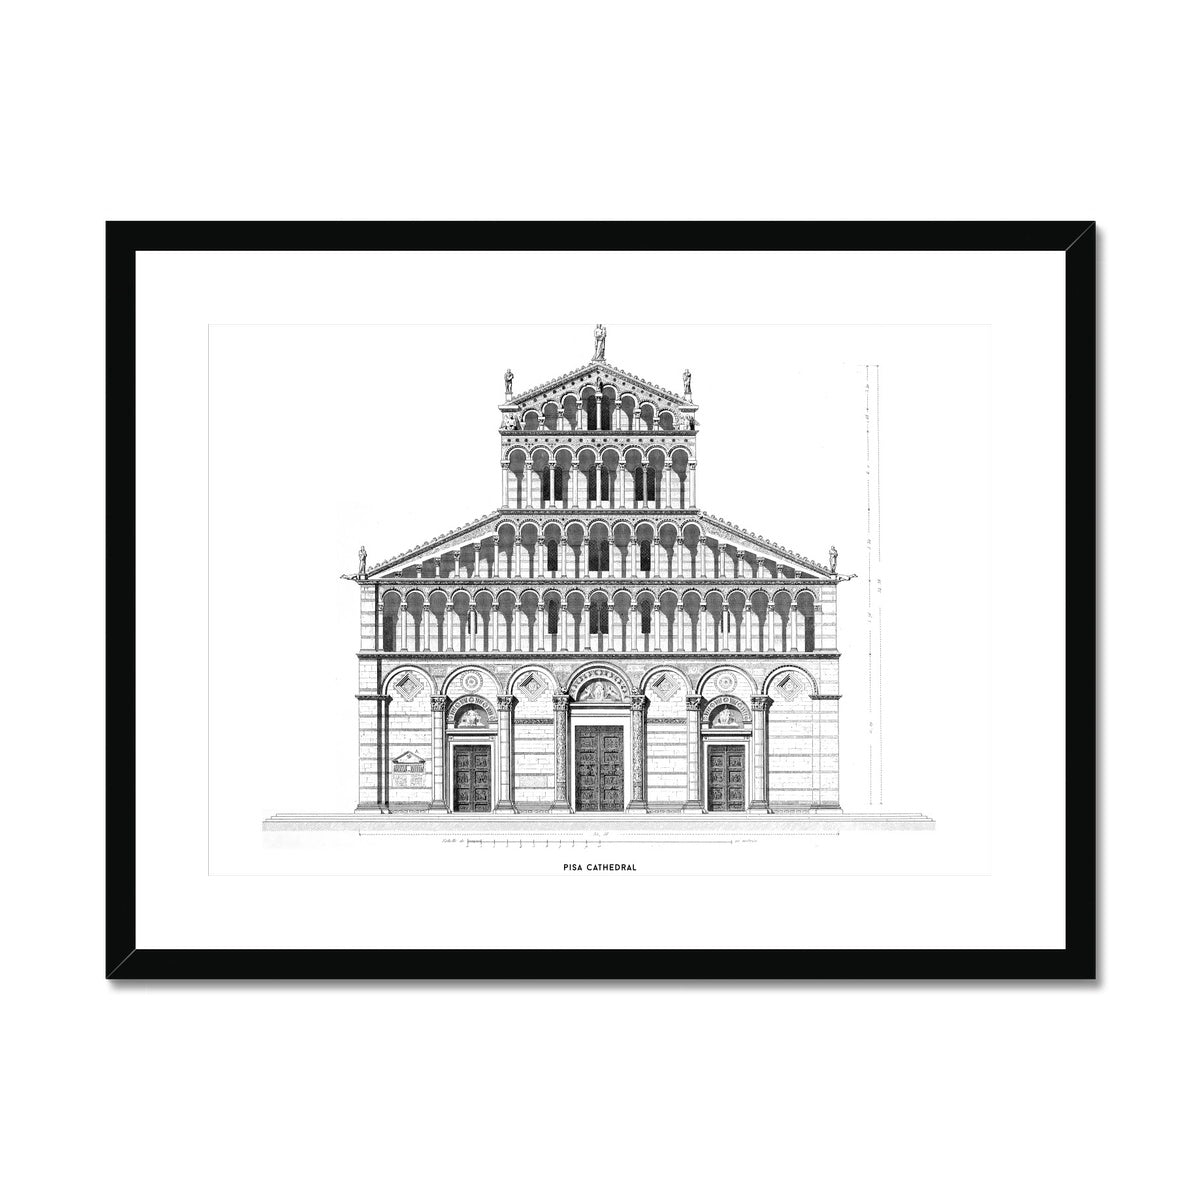 Pisa Cathedral - Primary Elevation - White -  Framed & Mounted Print